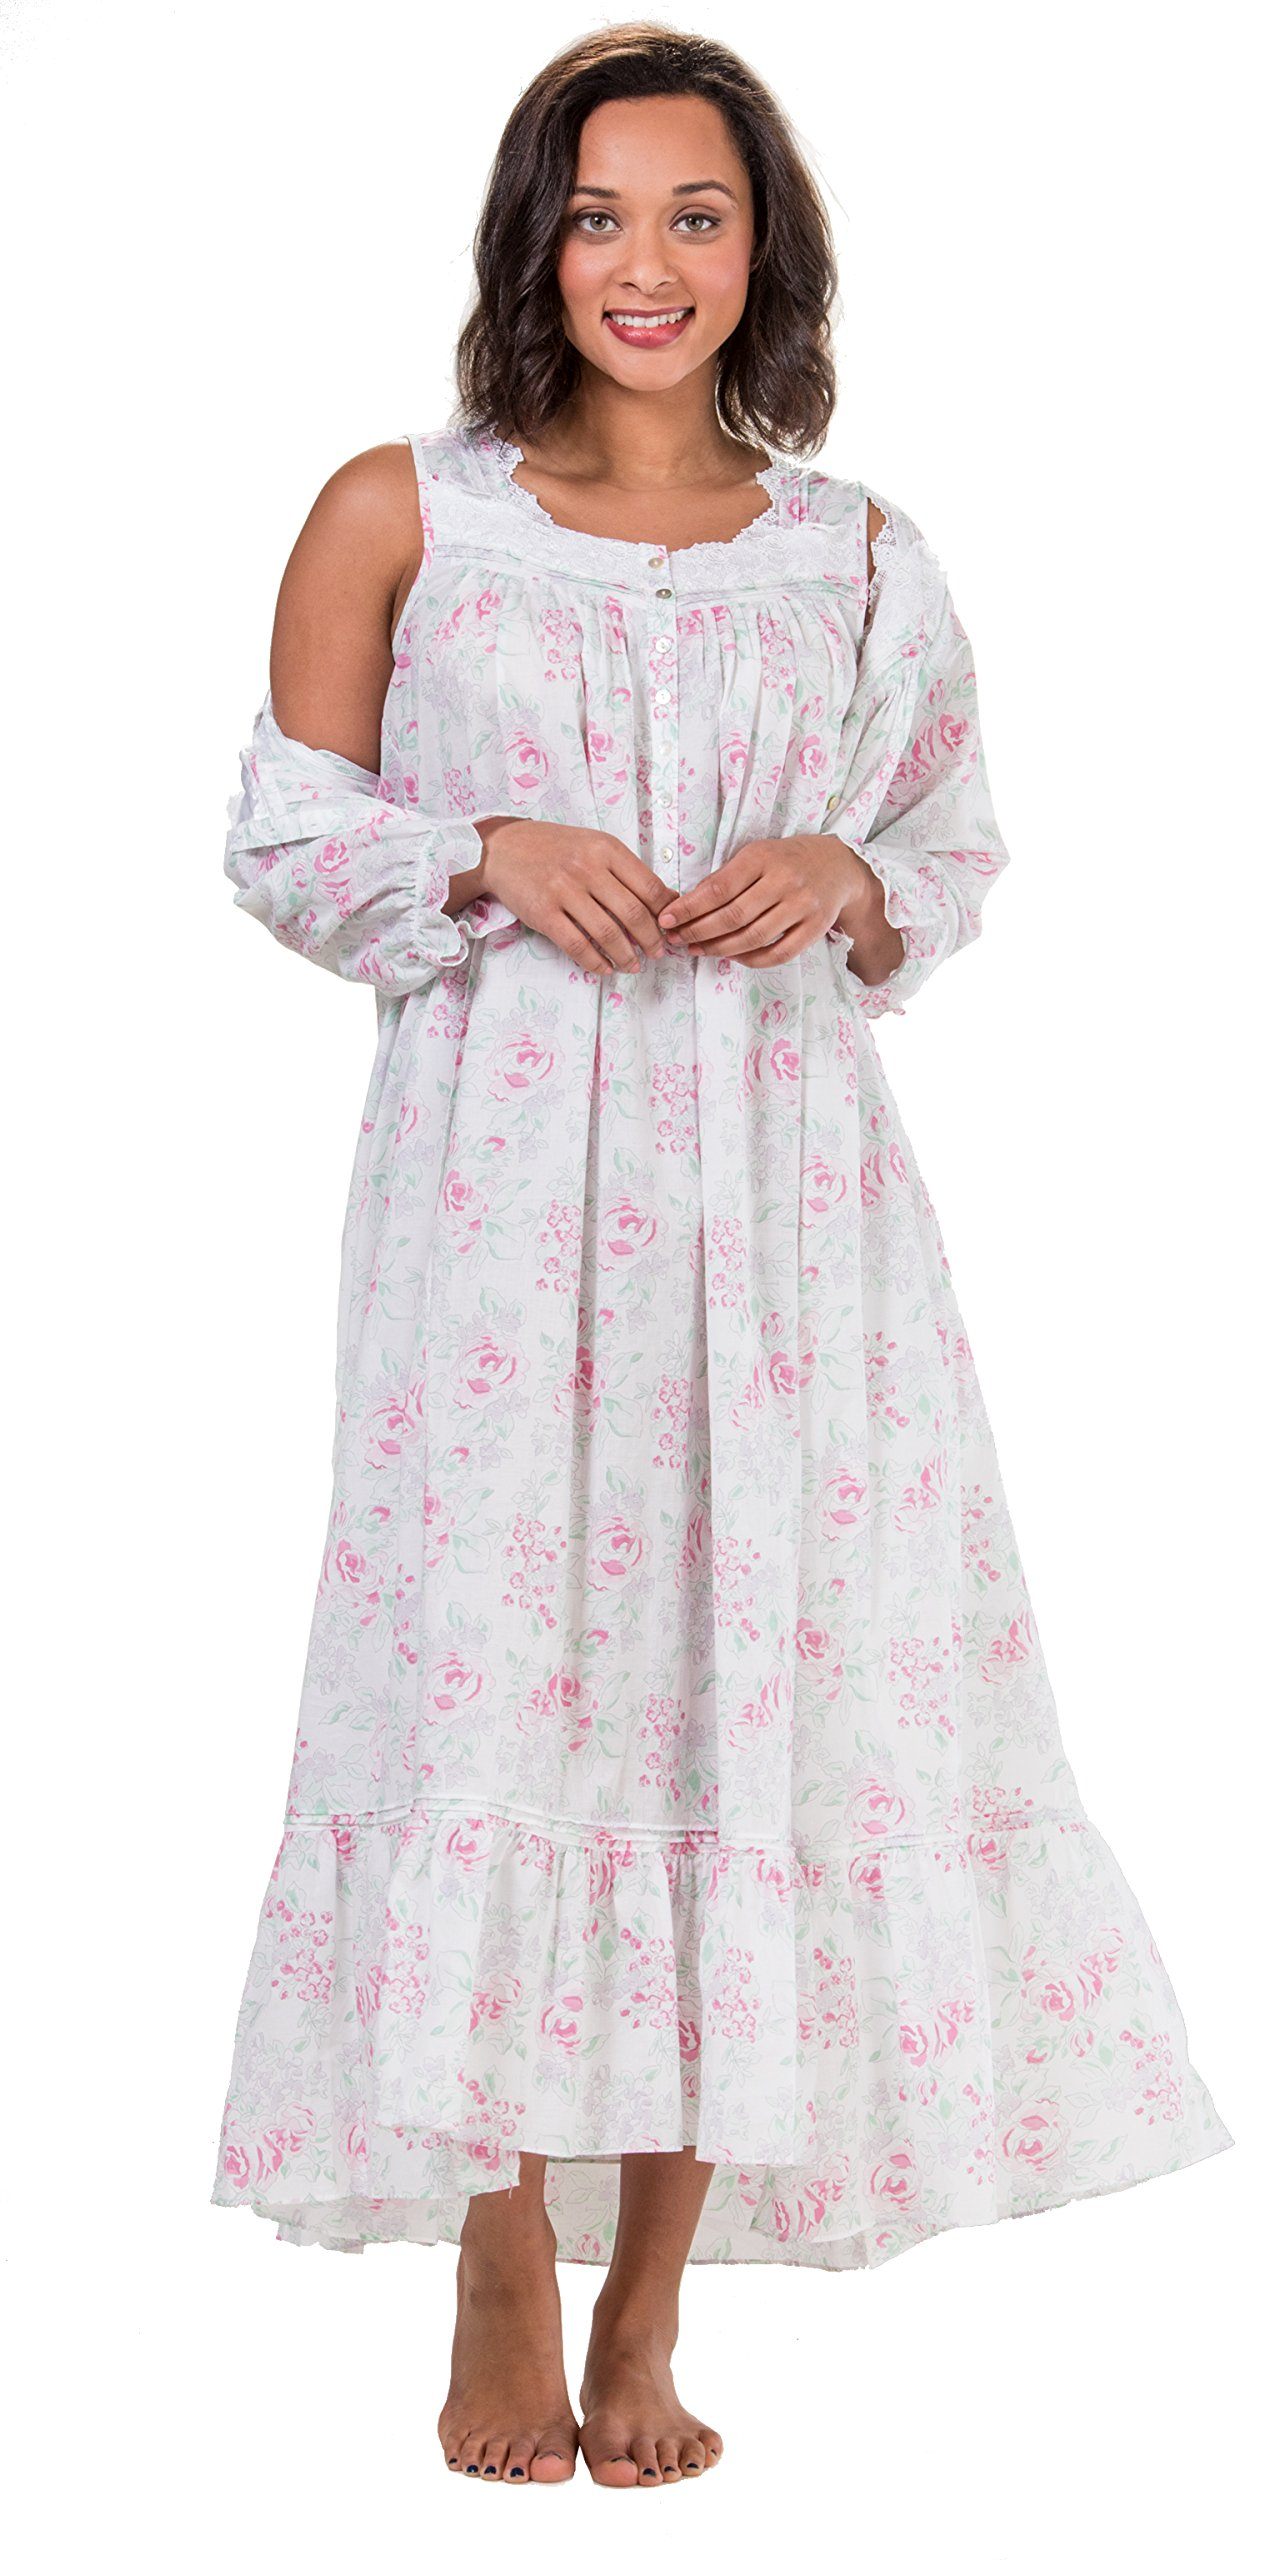 Eileen West Robe & Gown Set - Sleeveless Cotton Lawn Peignoir Set - Country Rose (White/Pink Floral, X-Large)